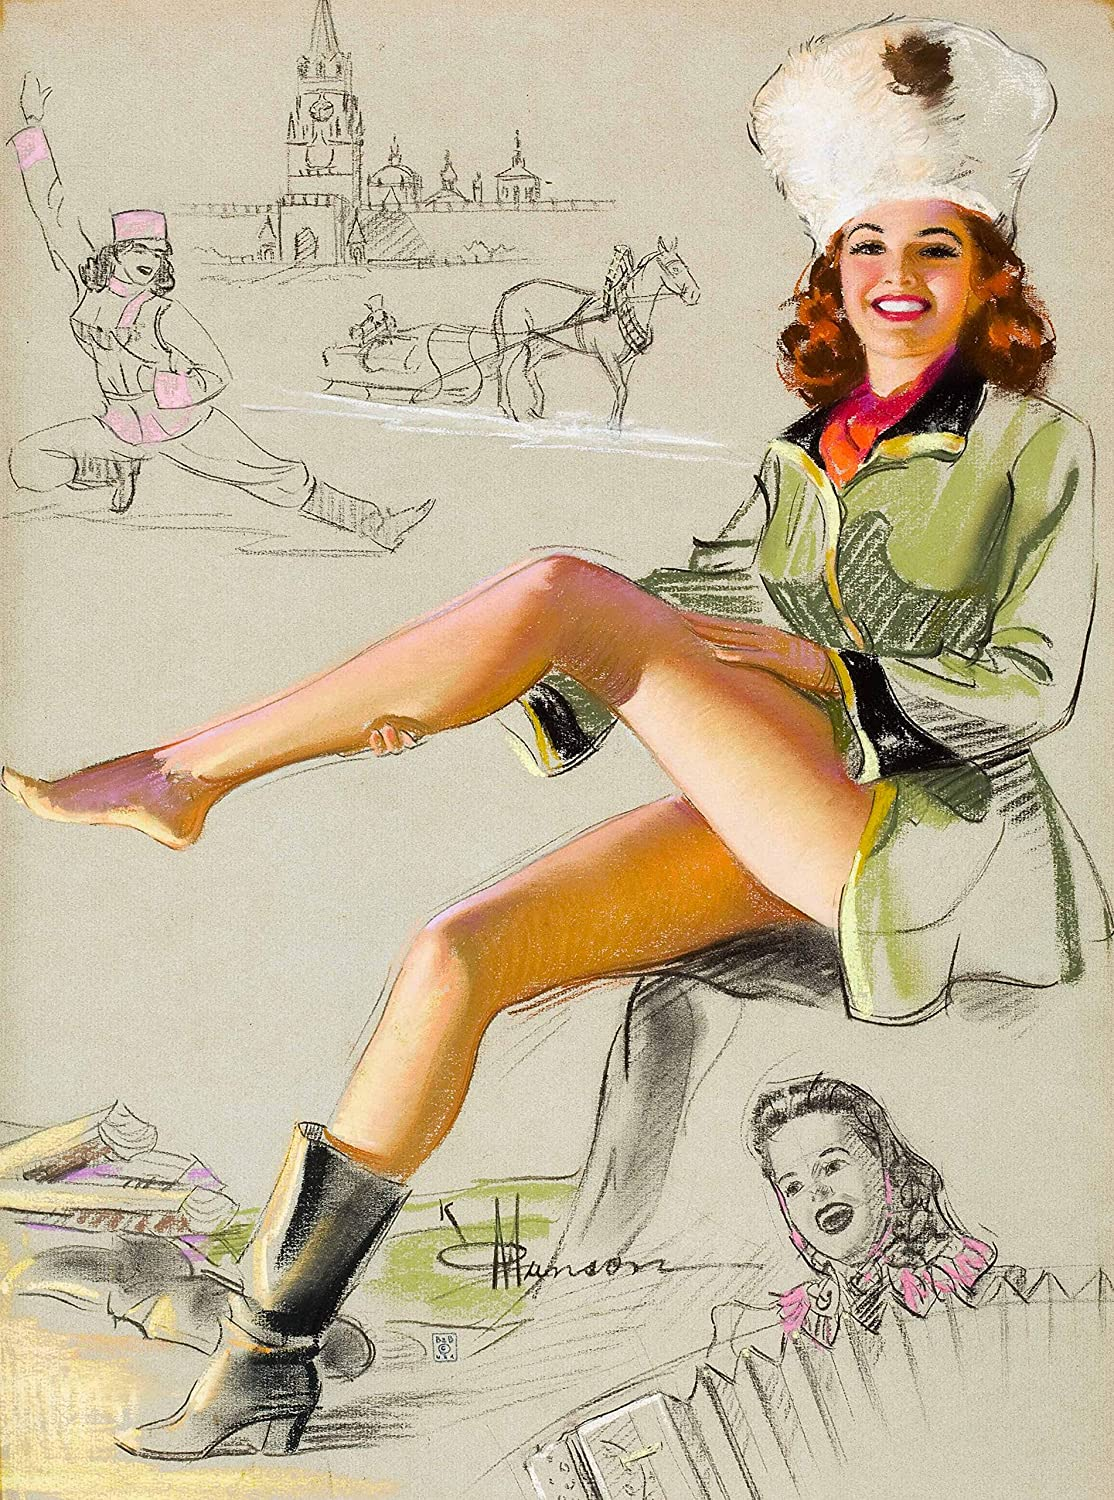 A SLICE IN TIME 1940's Pin-Up Girl Russia Vintage Pin Up Russian USSR Soviet Union Travel Home Collectible Wall Decor Art Poster Picture Print. 10 x 13.5 inches